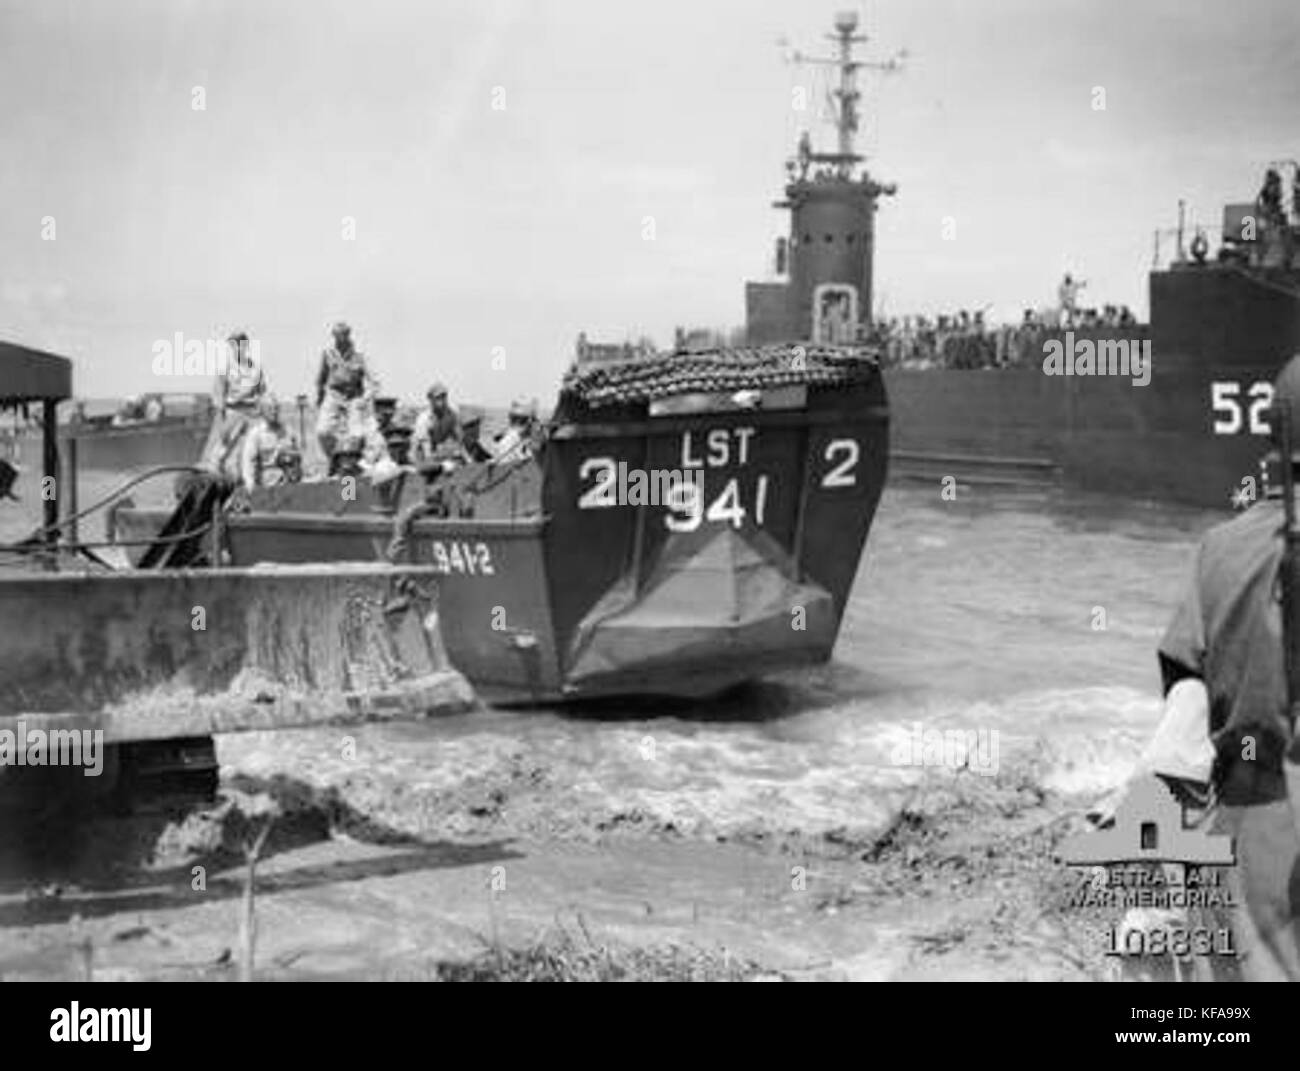 LCVP2 from USS LST 941 Brunei Bay 10 June 1945 - Stock Image